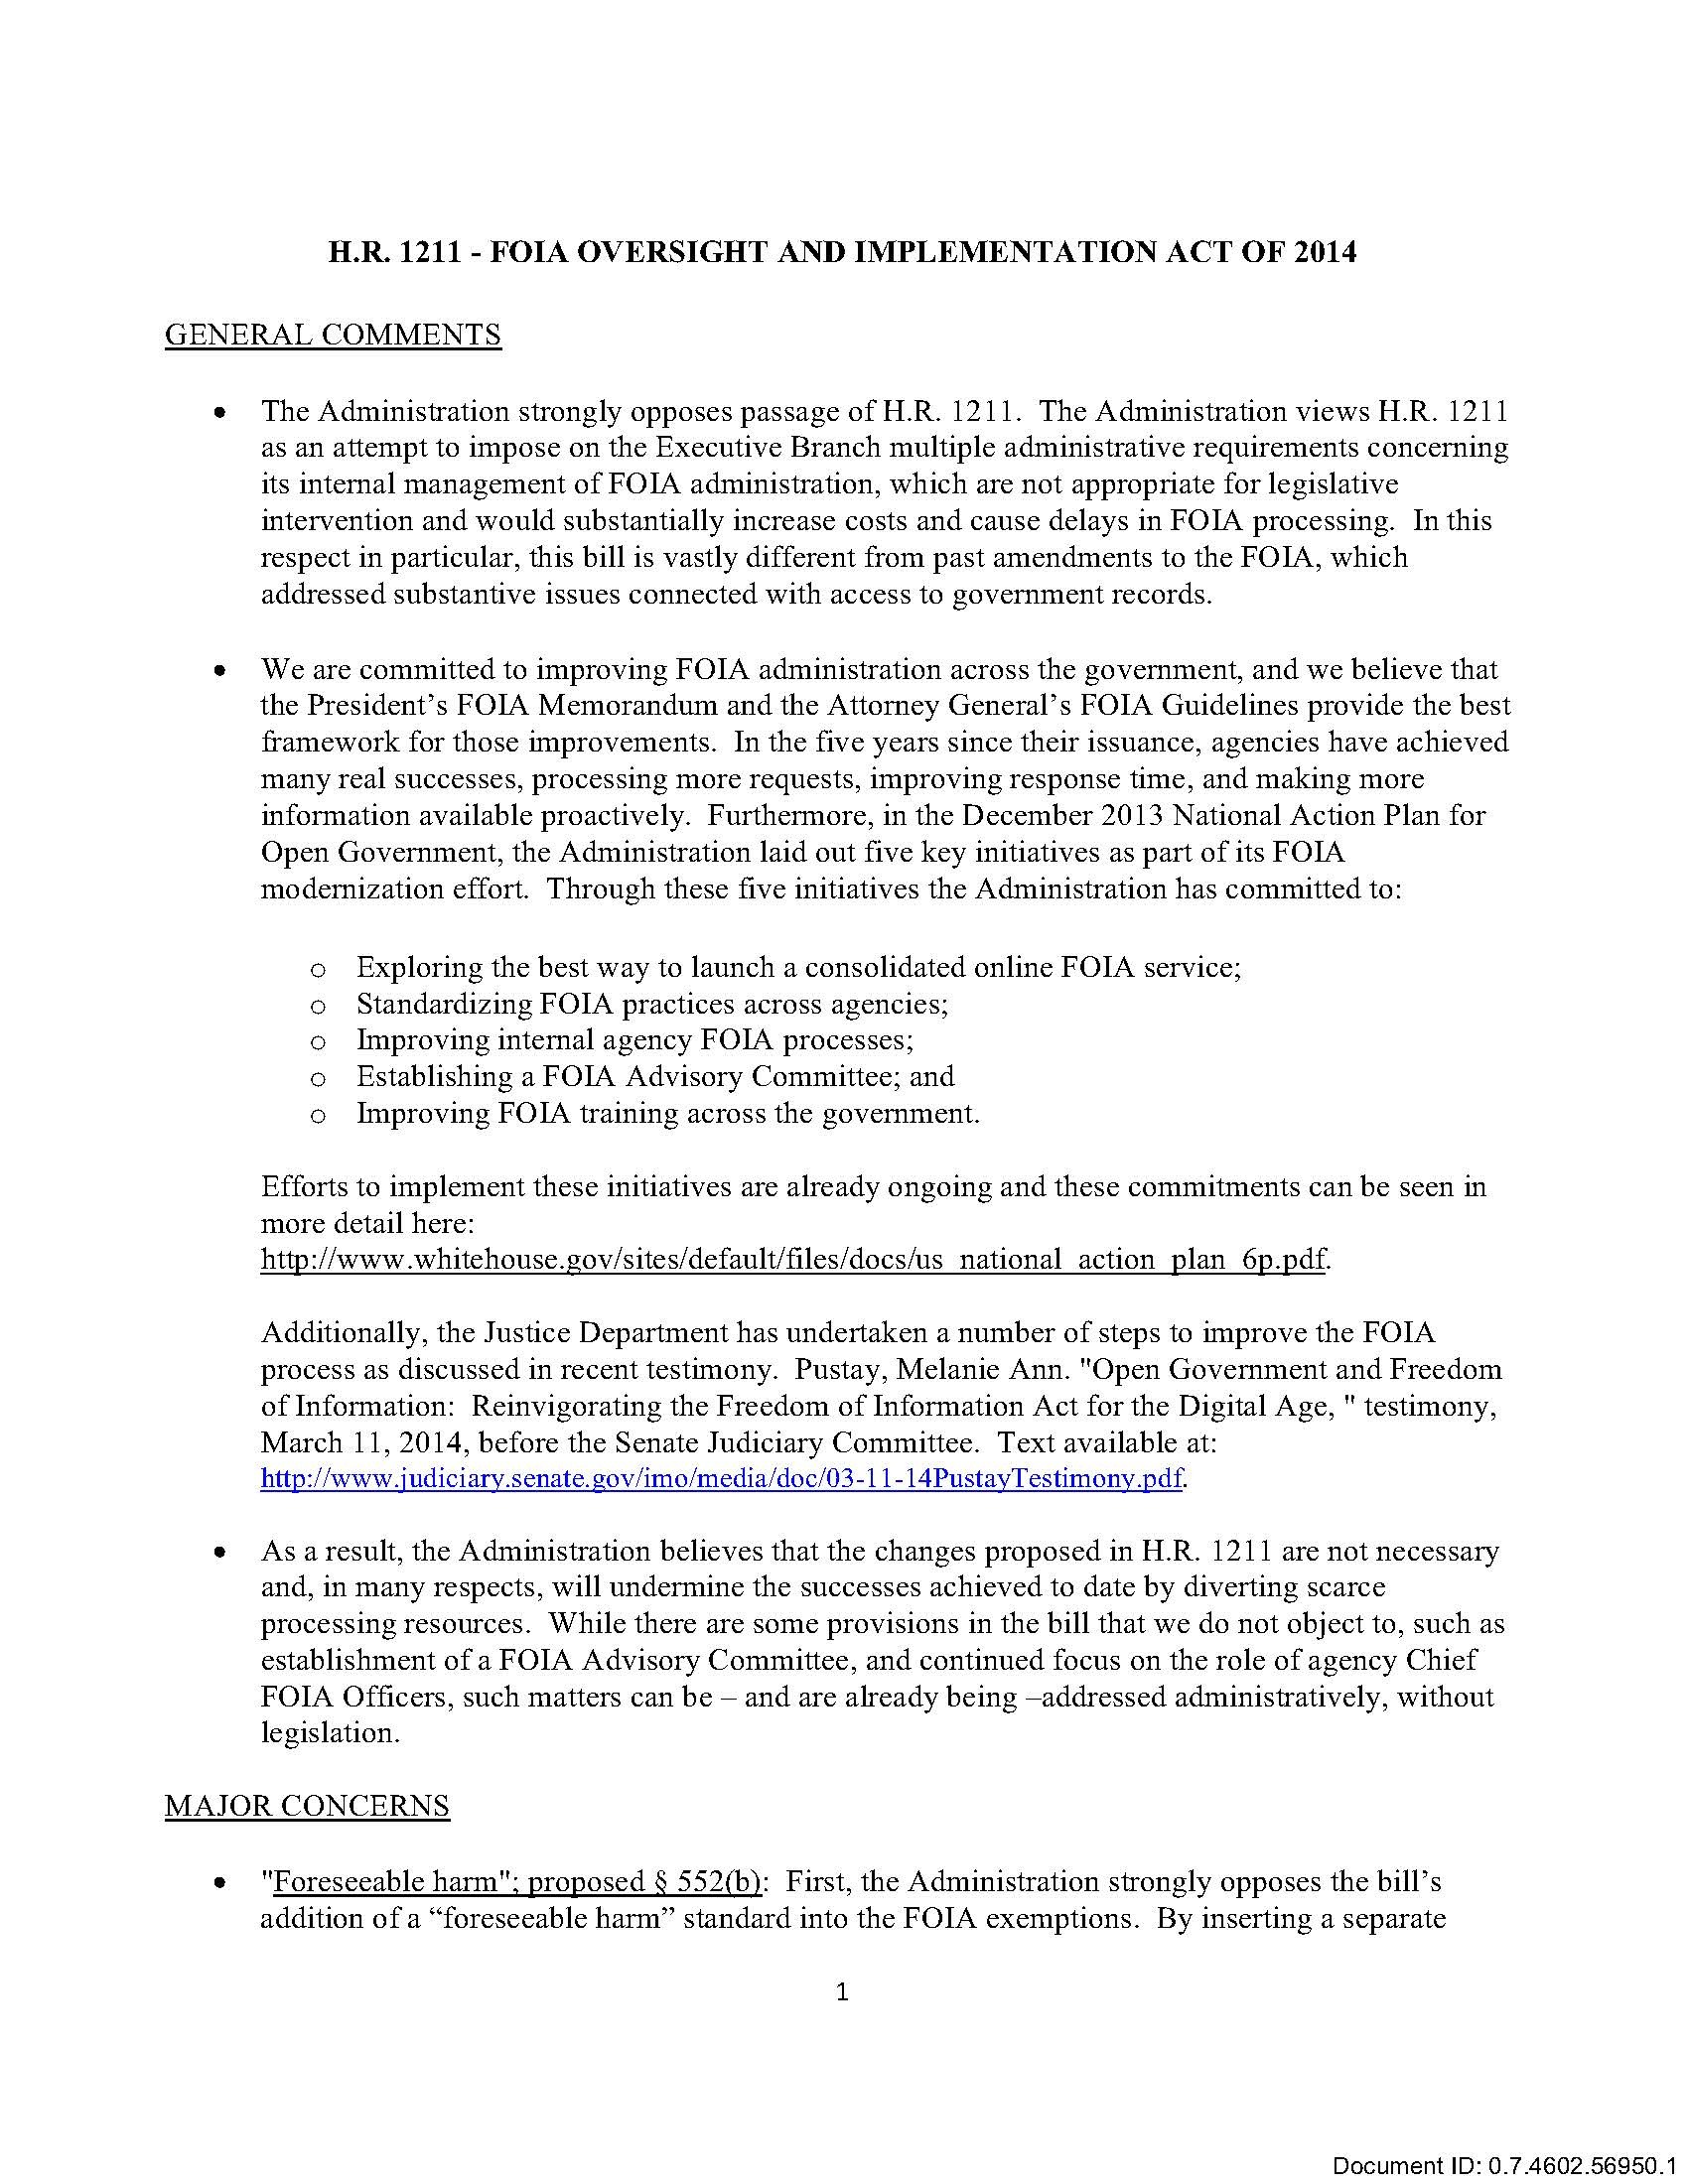 ucl spp essay guidelines